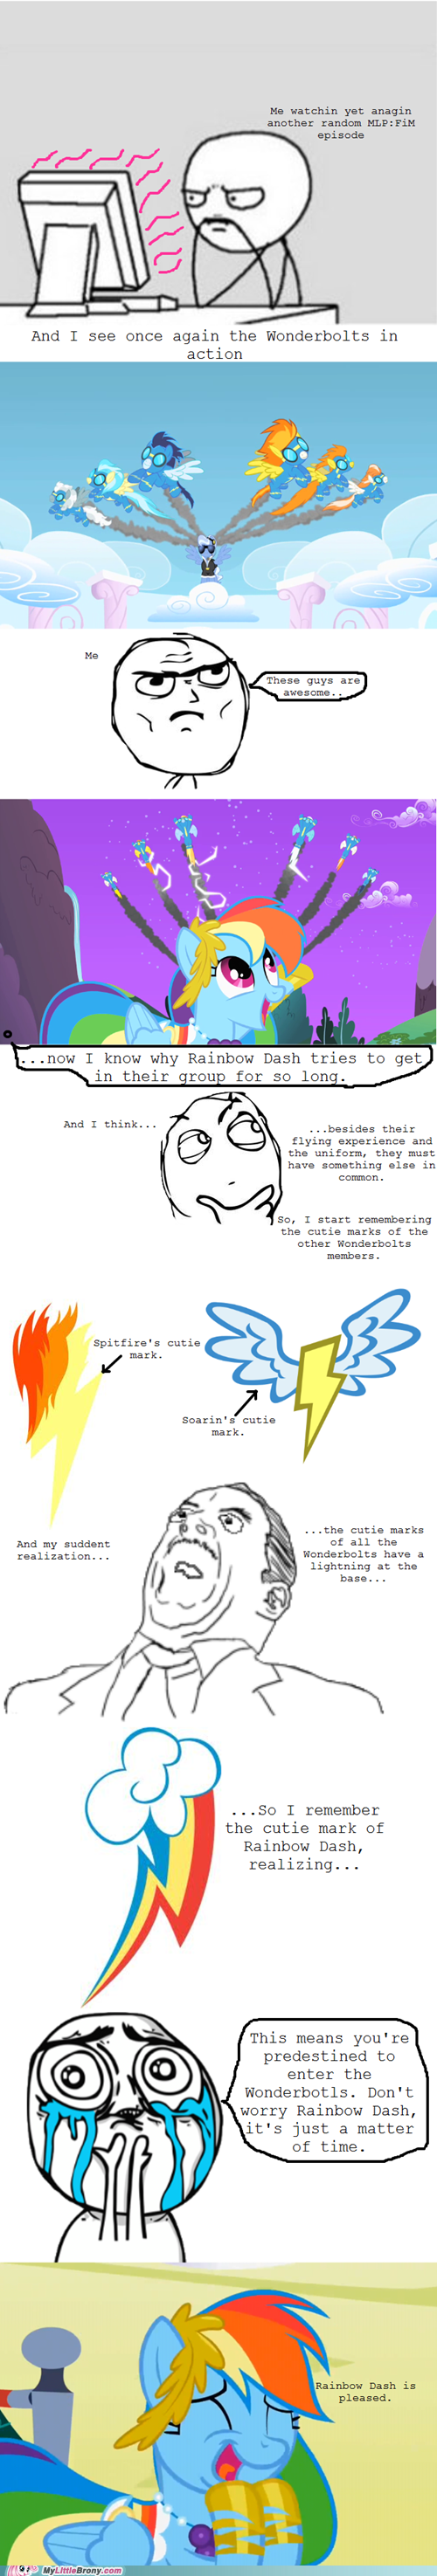 comic wonderbolts Bronies TV realization rainbow dash